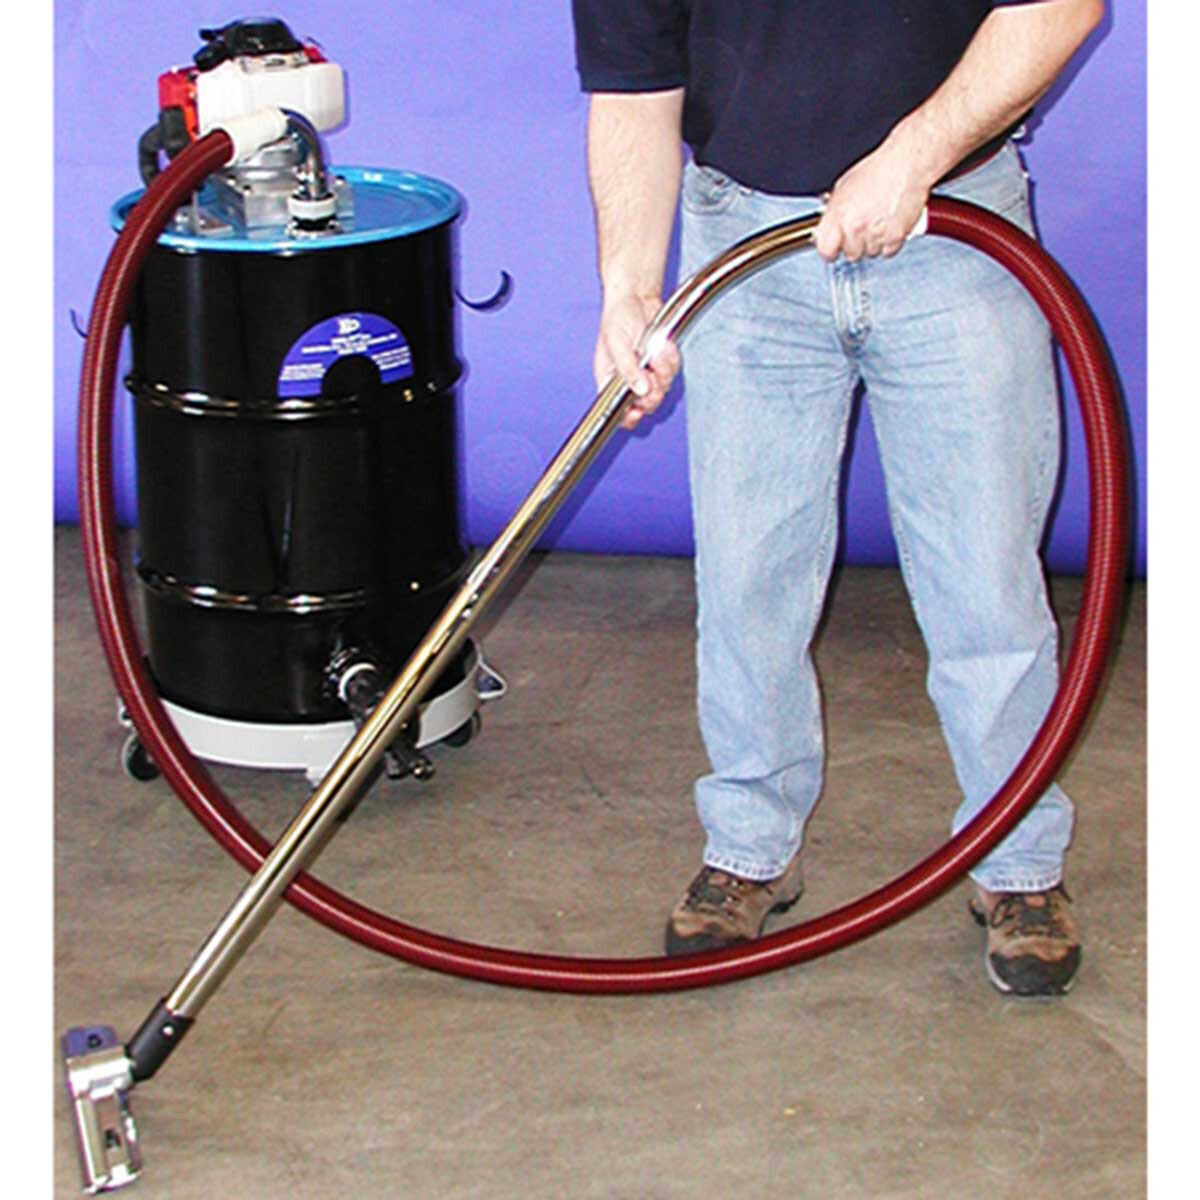 Kor-It KV-55 Powered Vacuum with Metal Floor Wand